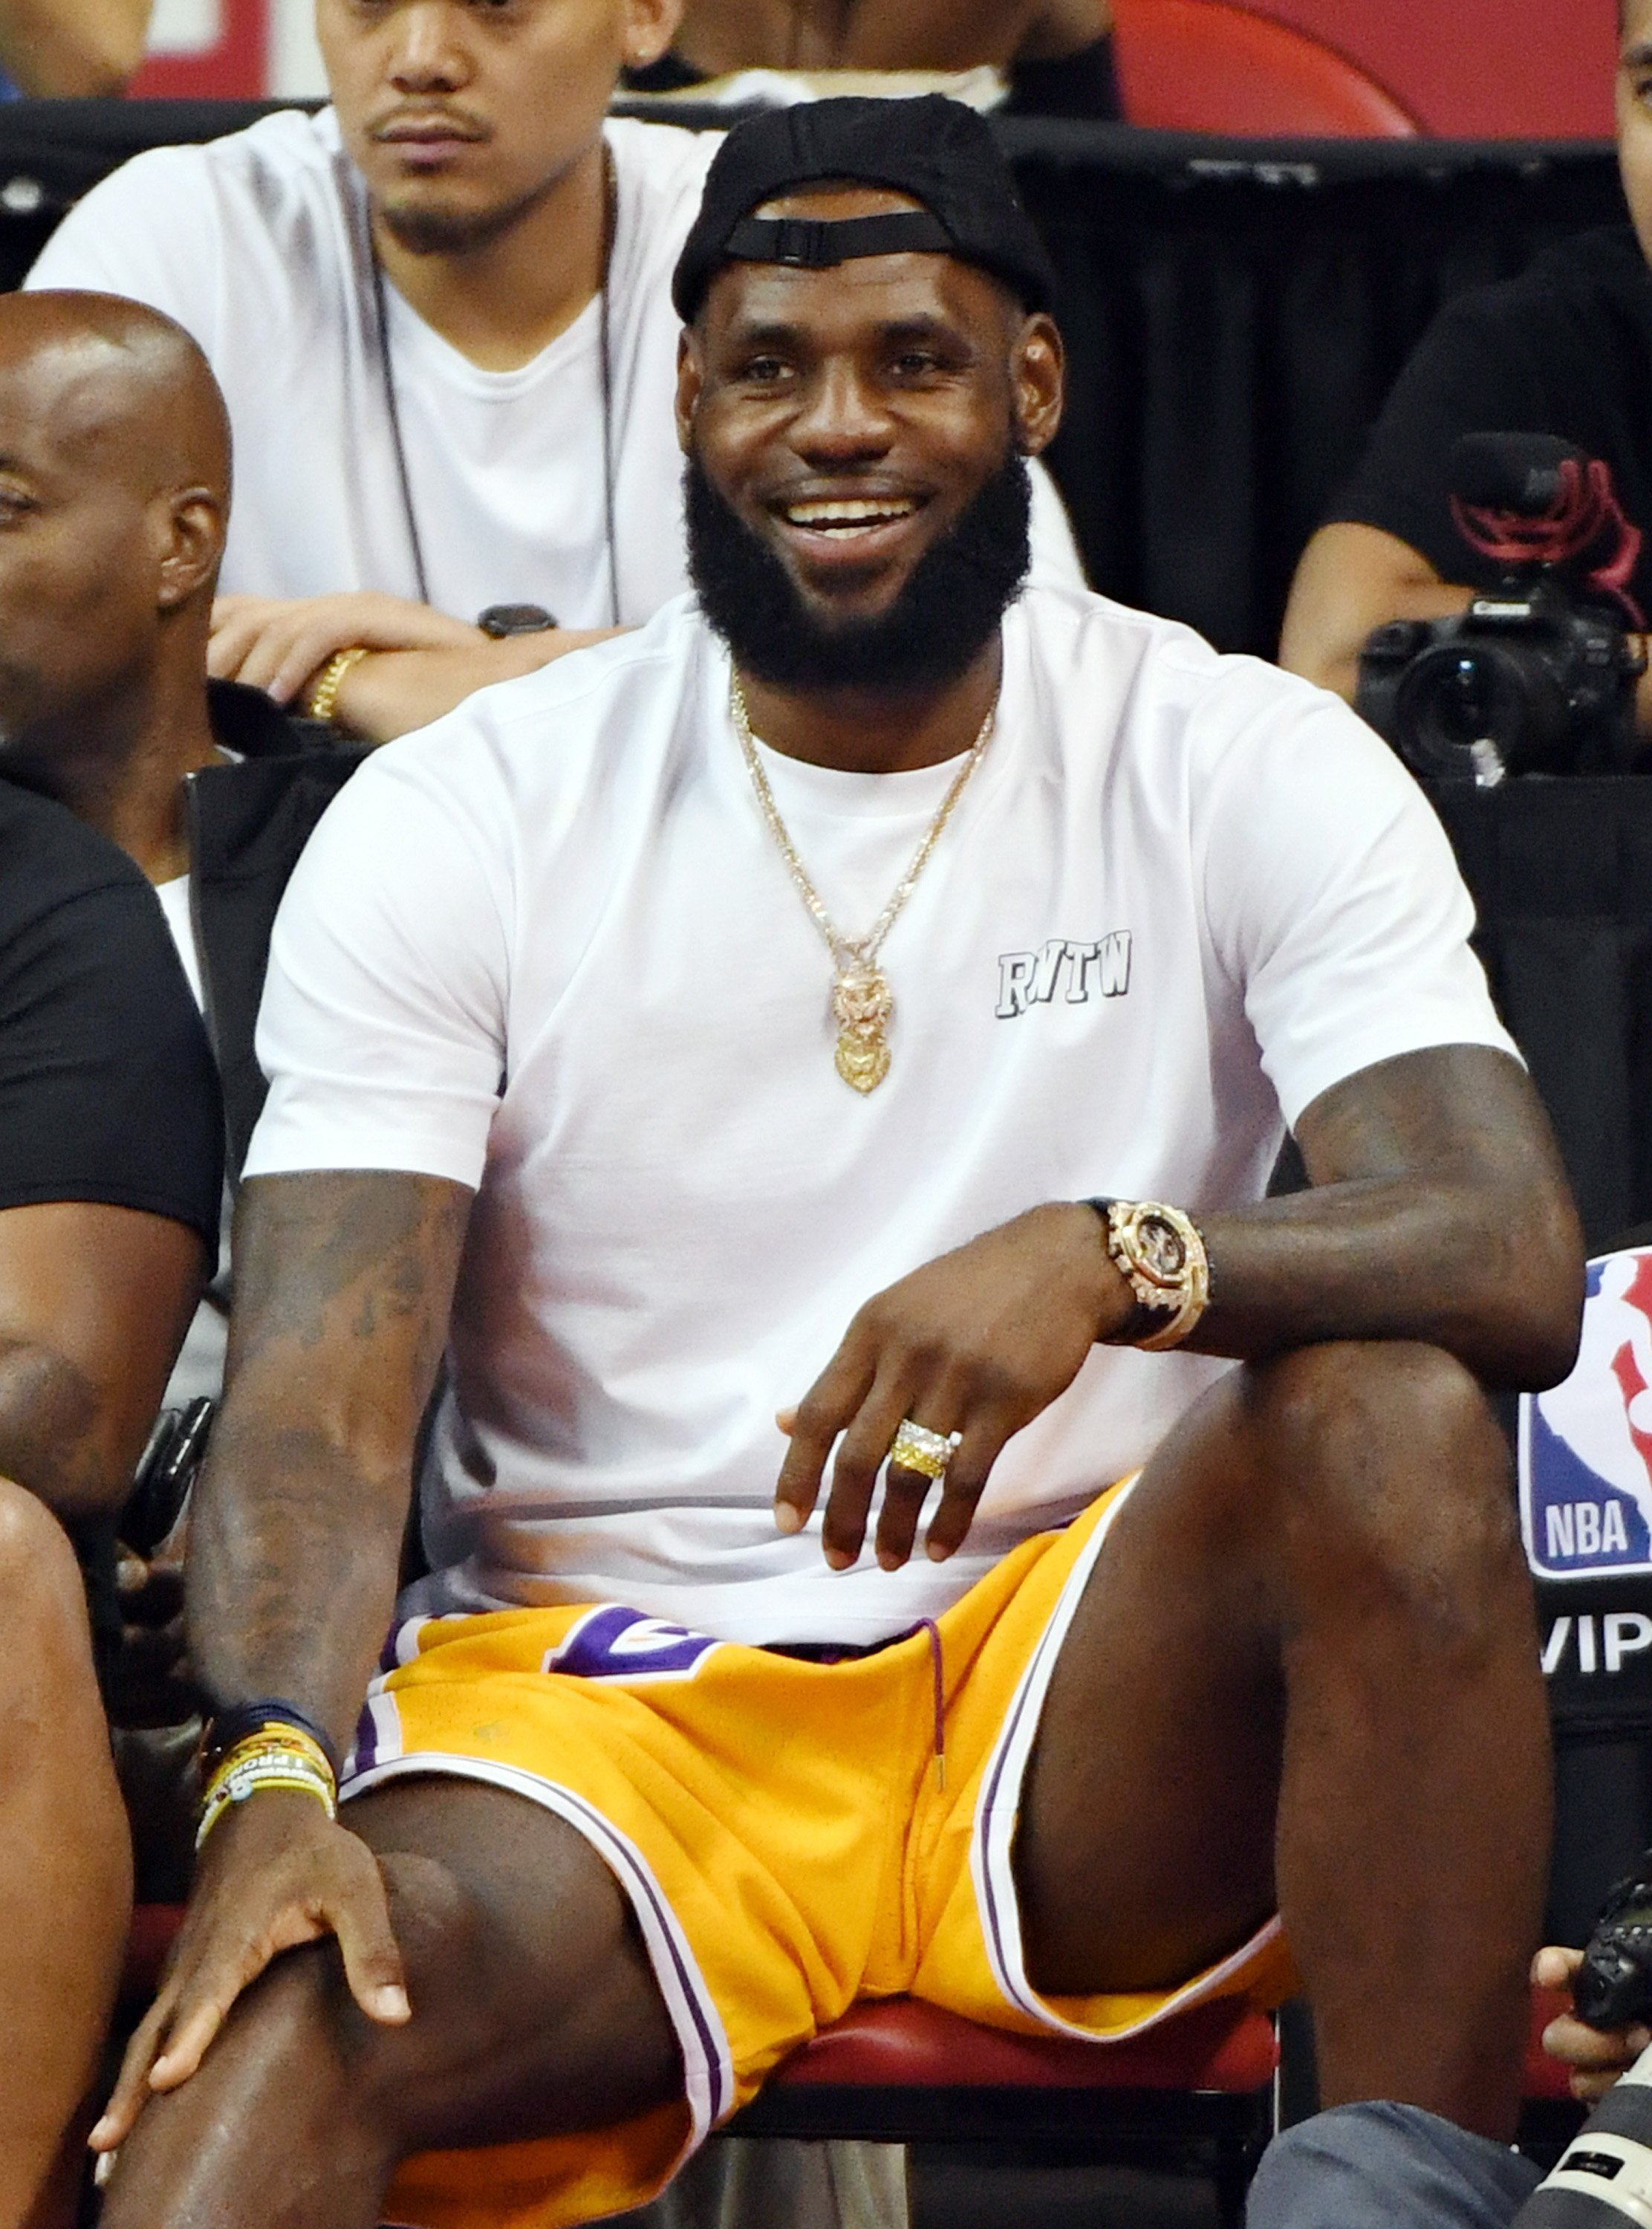 LeBron James attends a quarterfinal game of the 2018 NBA Summer League in Las Vegas, Nevada on July 15, 2018 | Photo: Getty Images